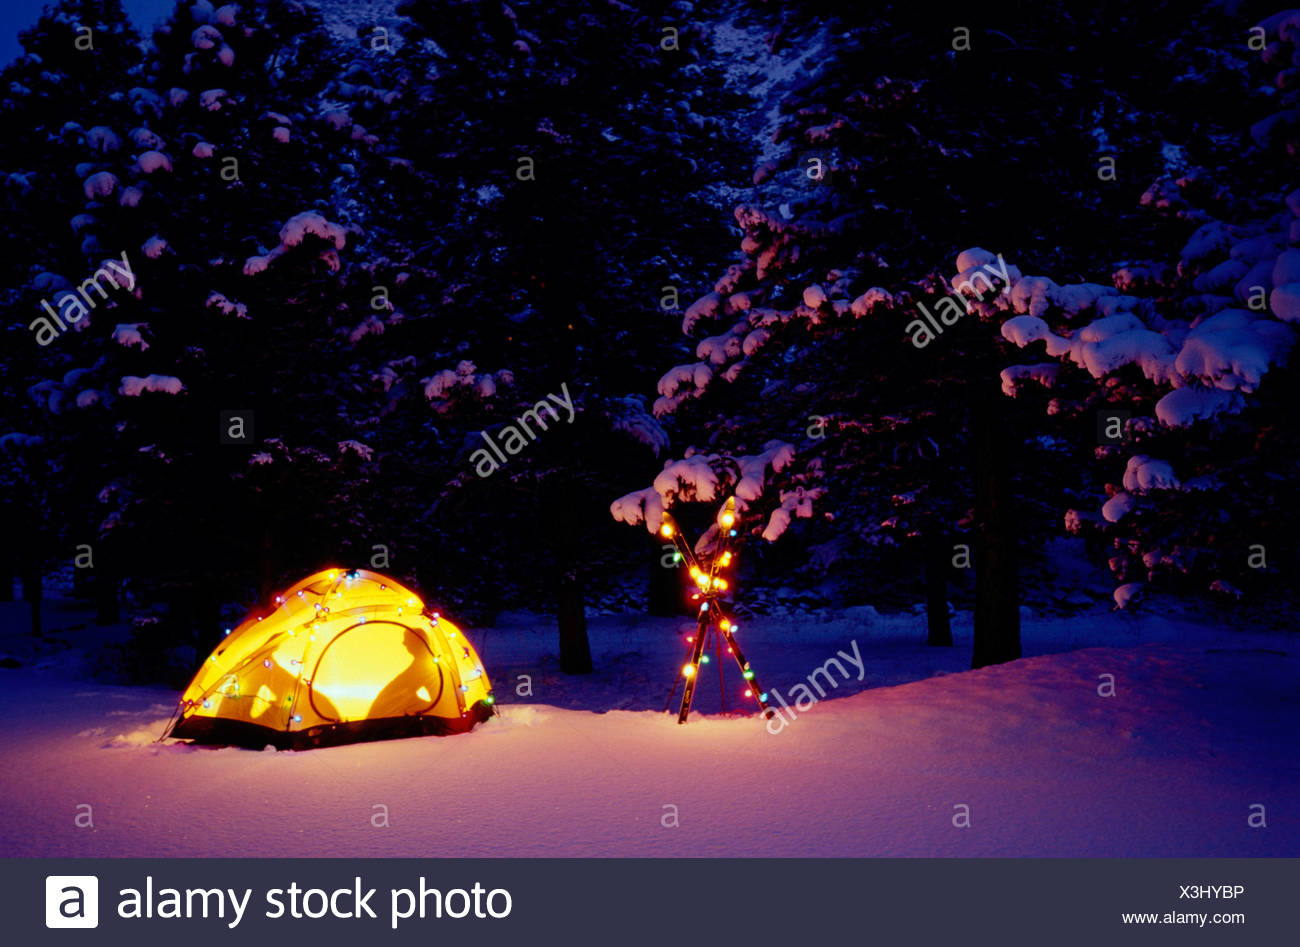 Christmas Lights For Camping.Winter Camping In Lit Tent W Christmas Lights Colorado